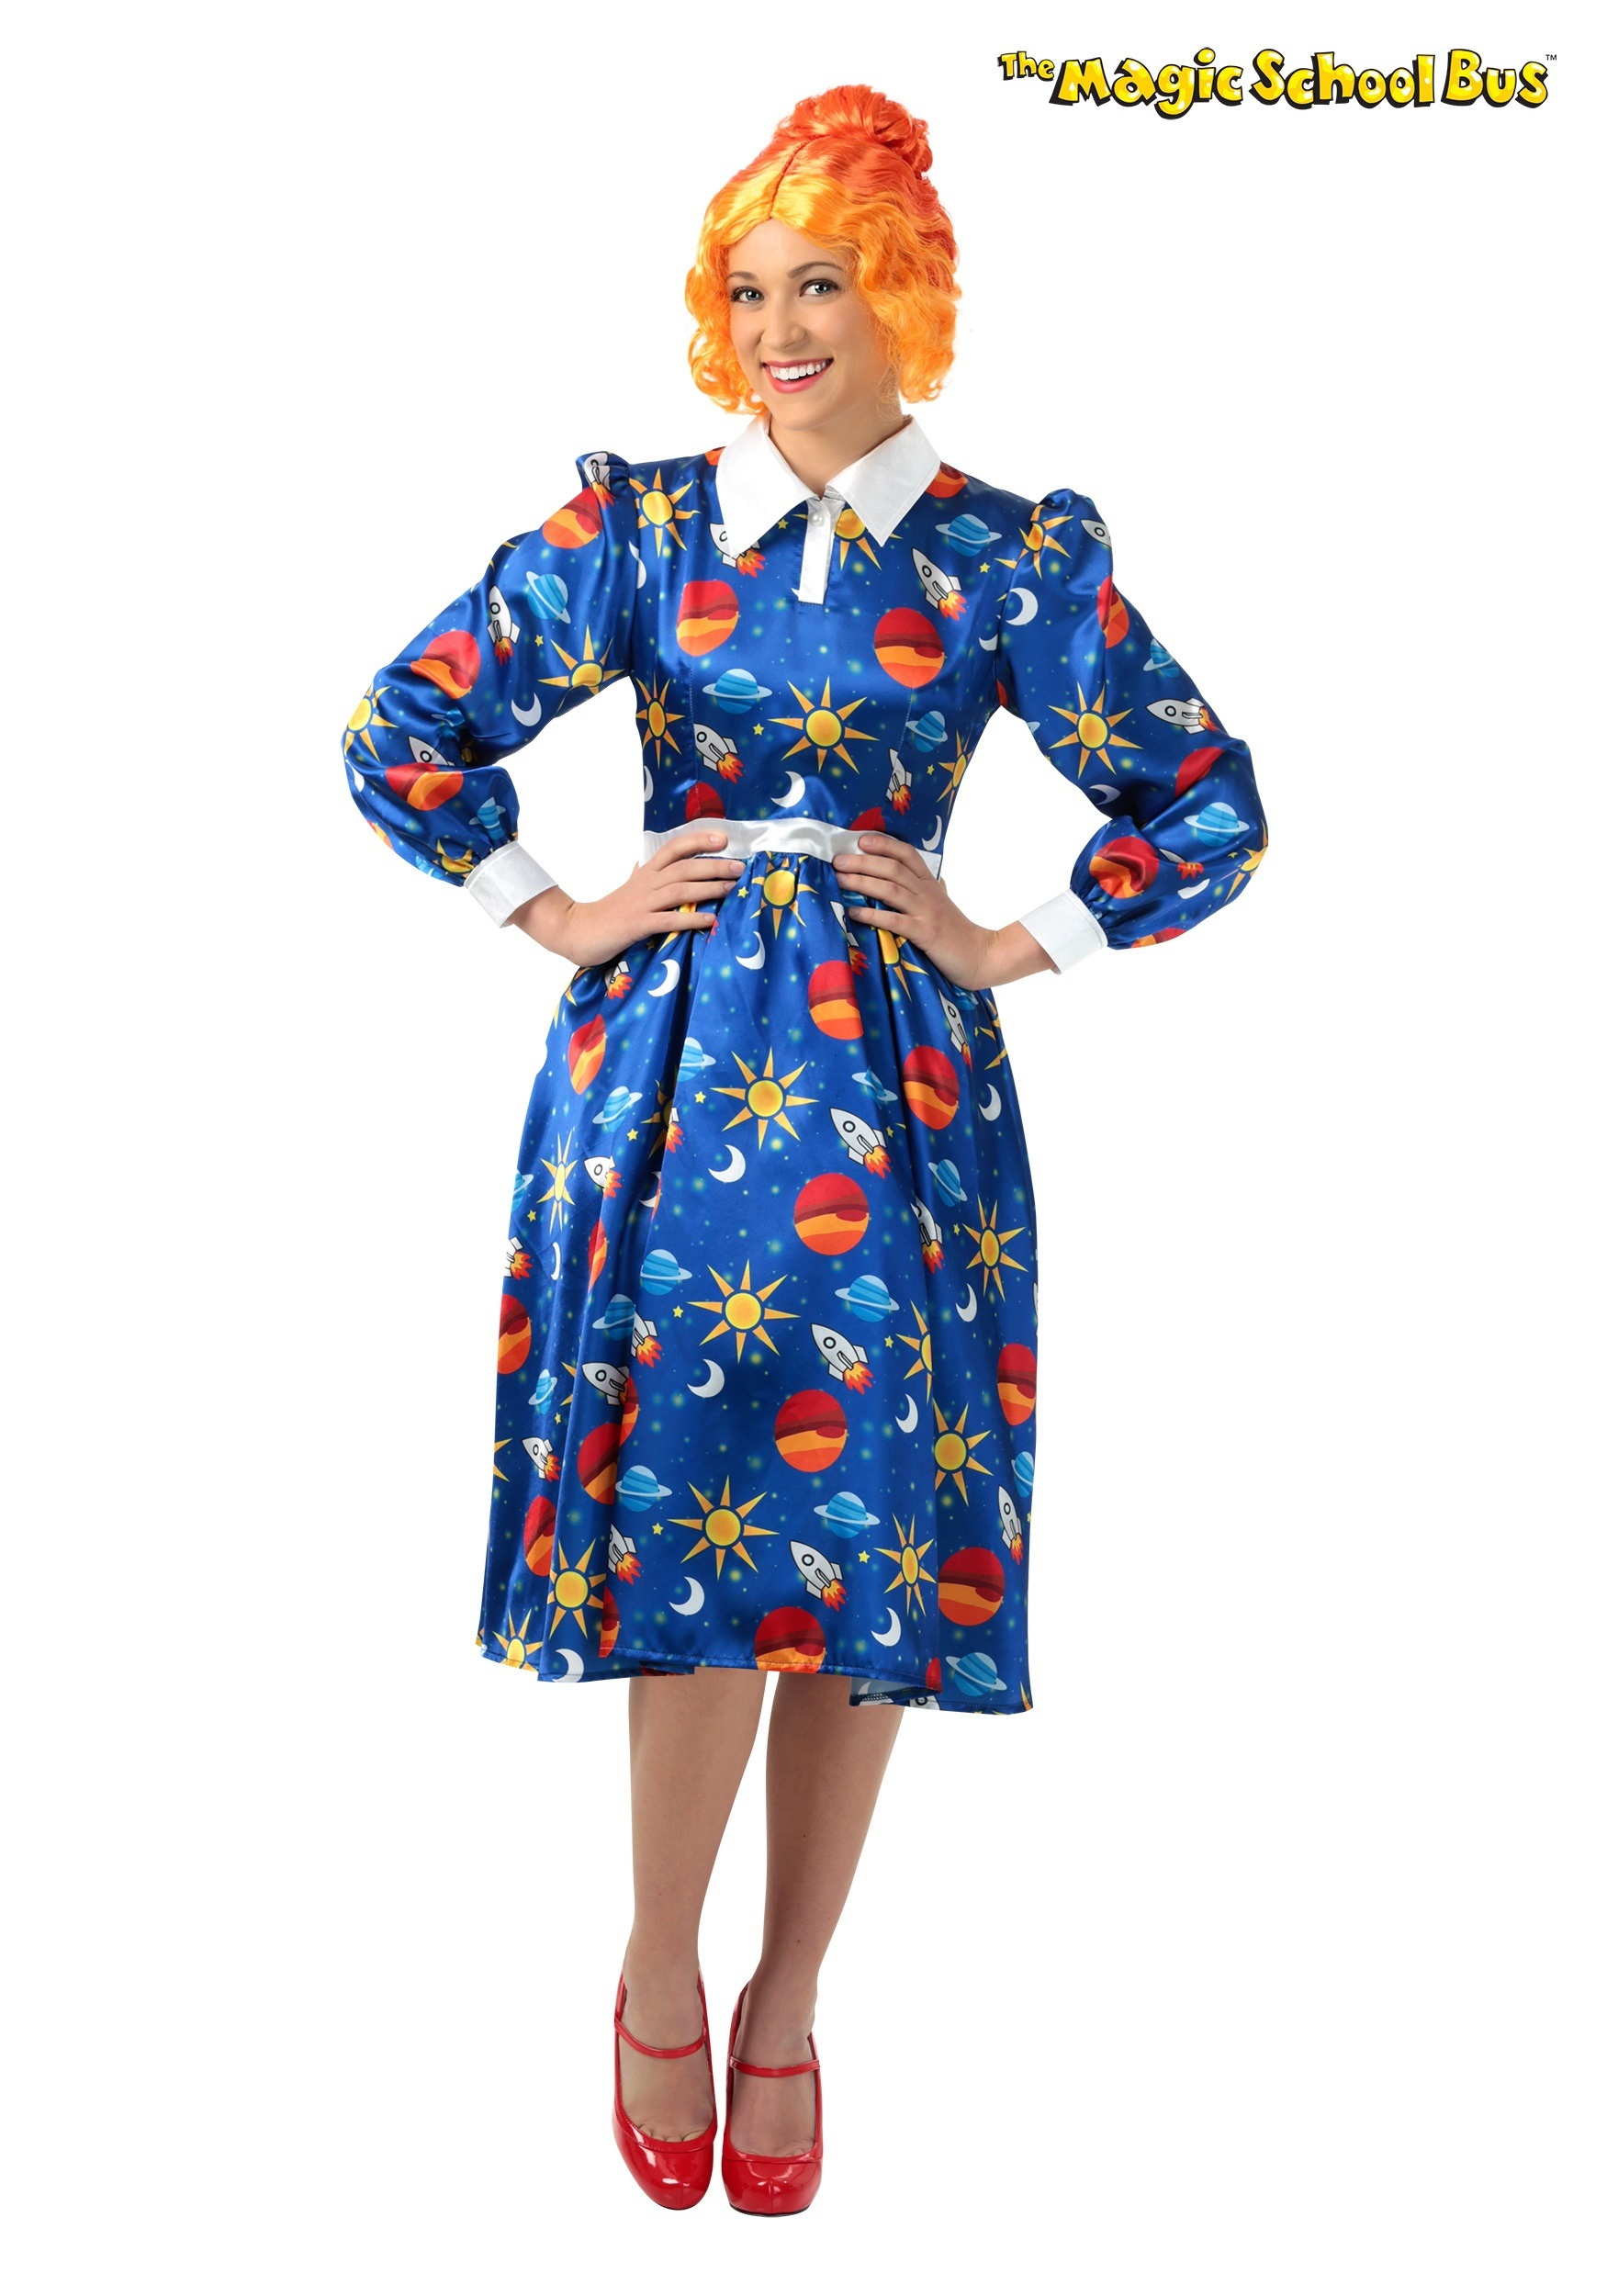 The Magic School Bus Miss Frizzle Plus Size Costume 1X 2X 3X-6540